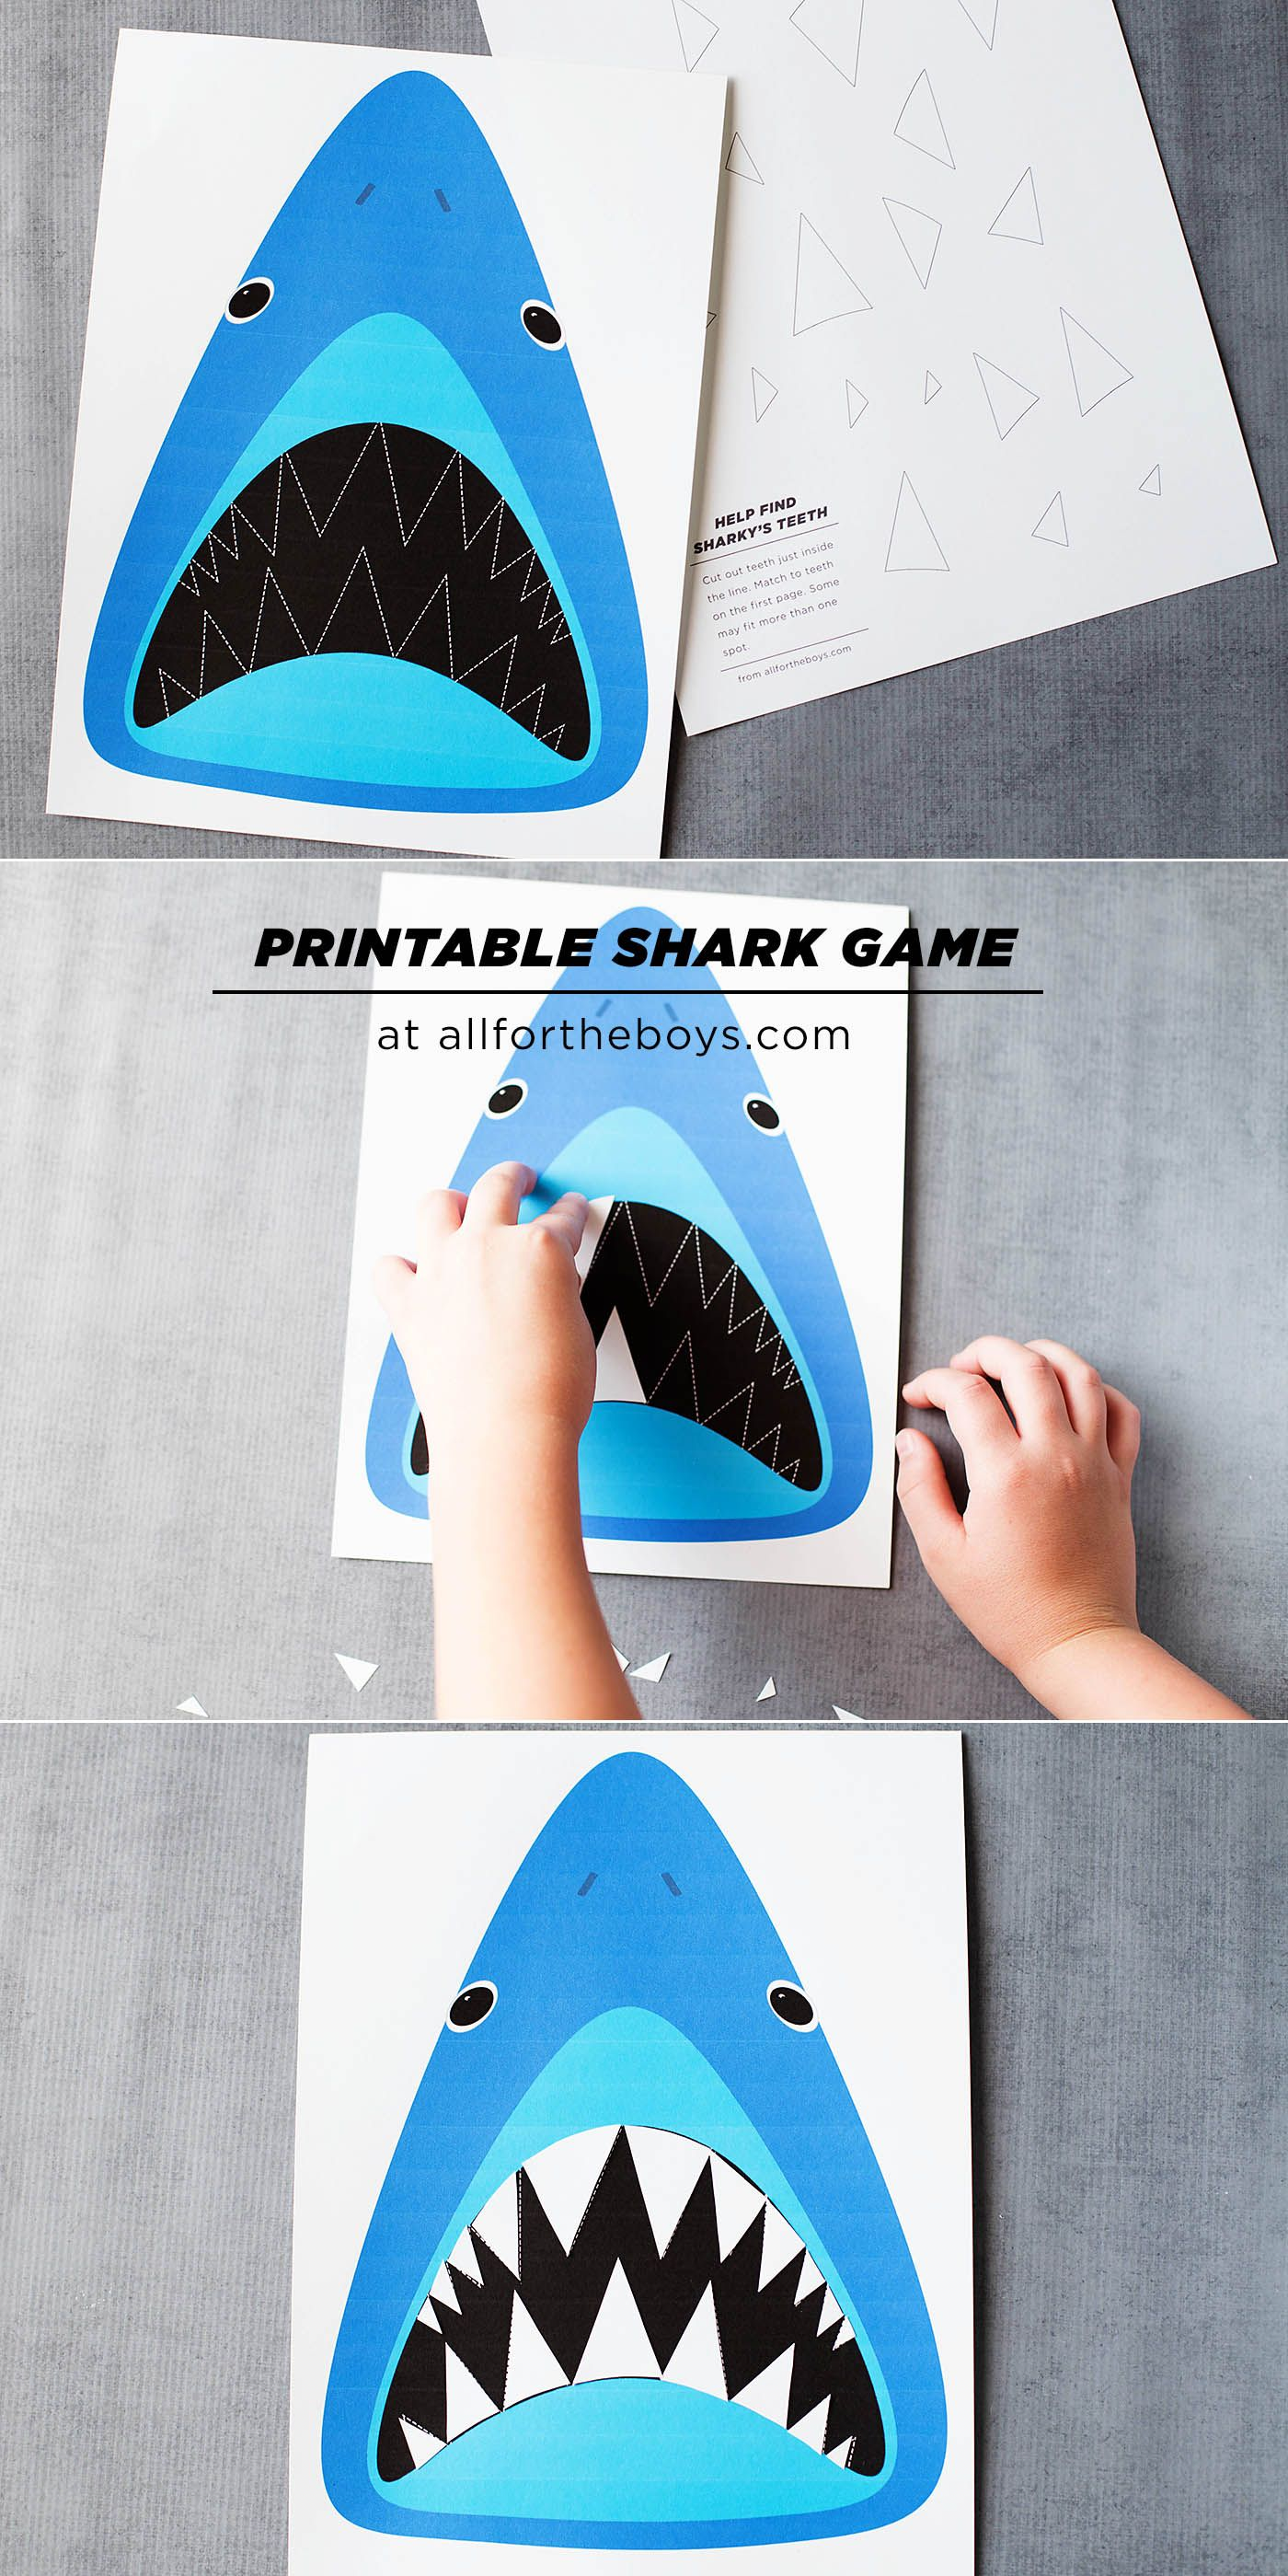 Find Sharkys Teeth: Printable Shark Game